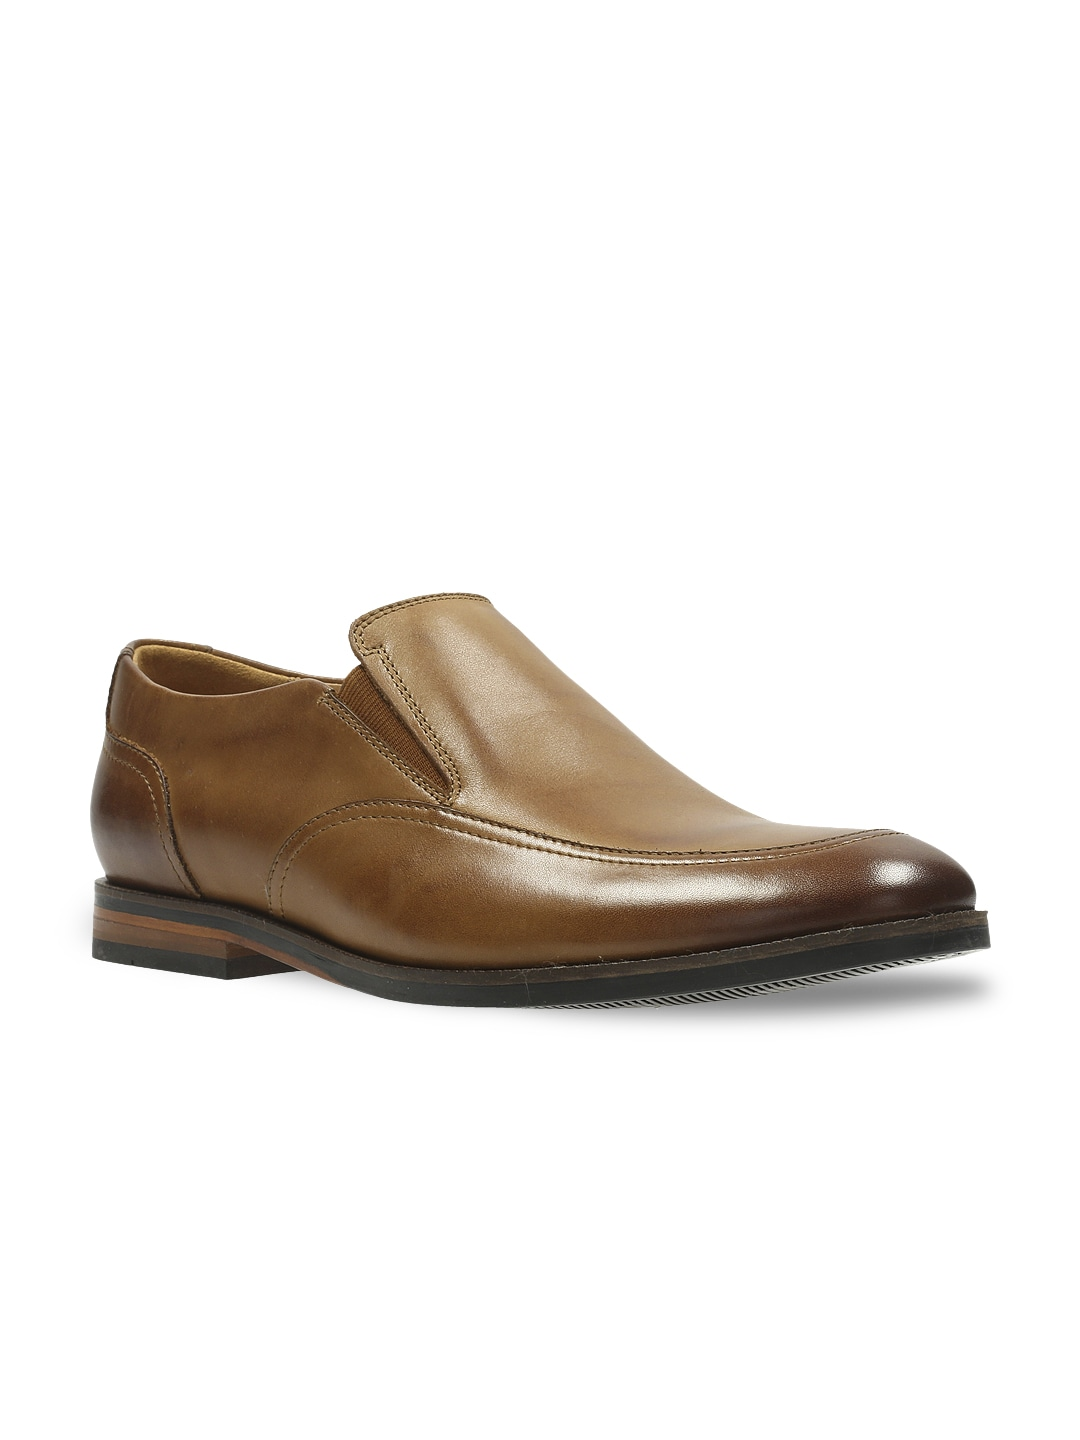 Clarks Men Tan Brown Leather Formal Shoes image